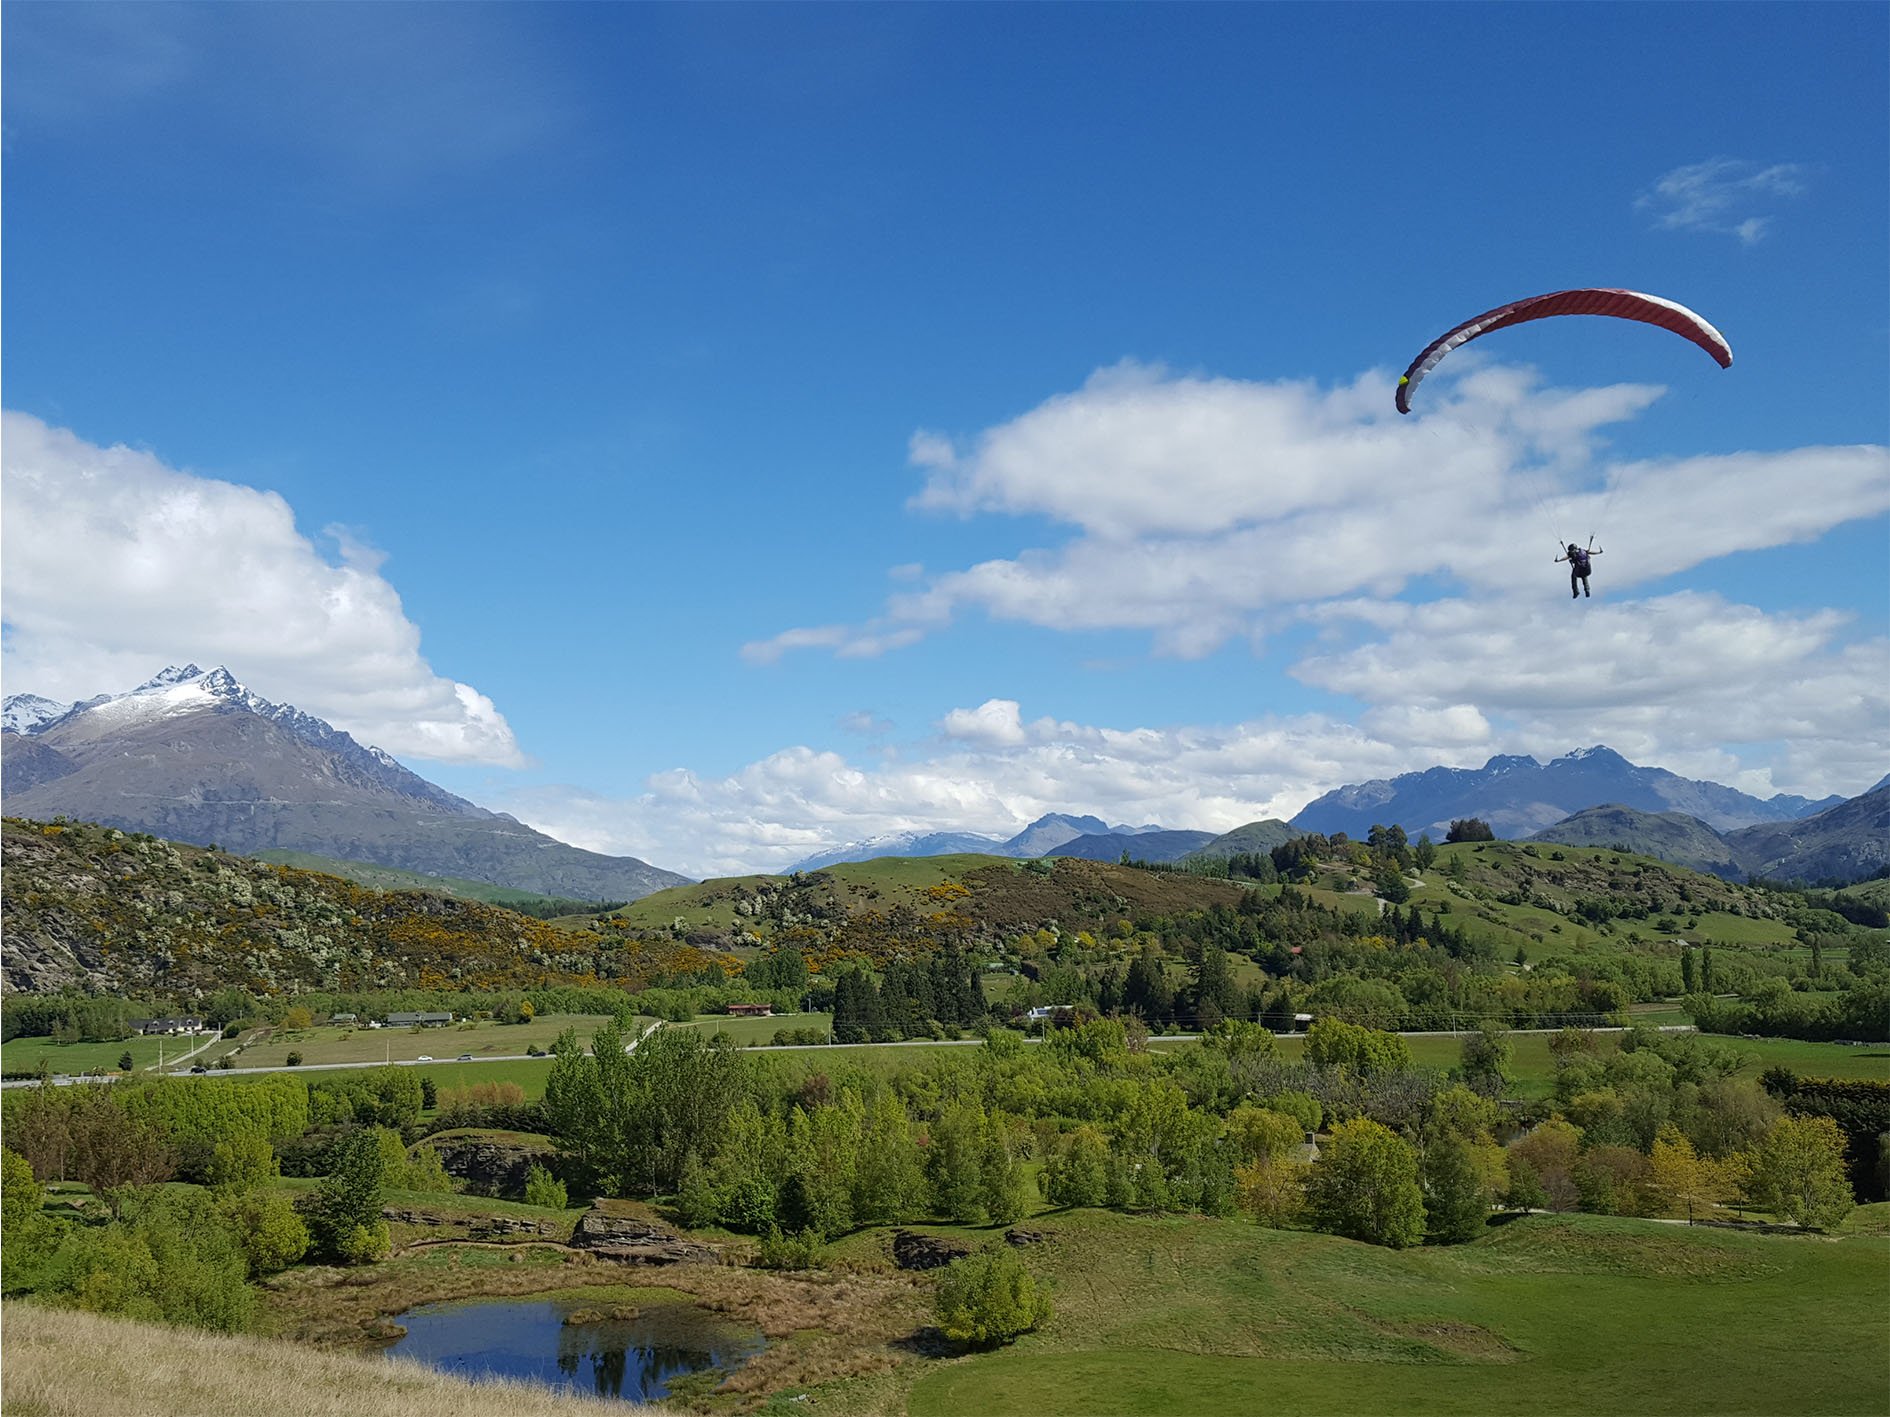 Infinity paragliding_learn to fly_Paragliding Queenstown_Advance paragliders_school_New Zealand_Queenstown_ground handling